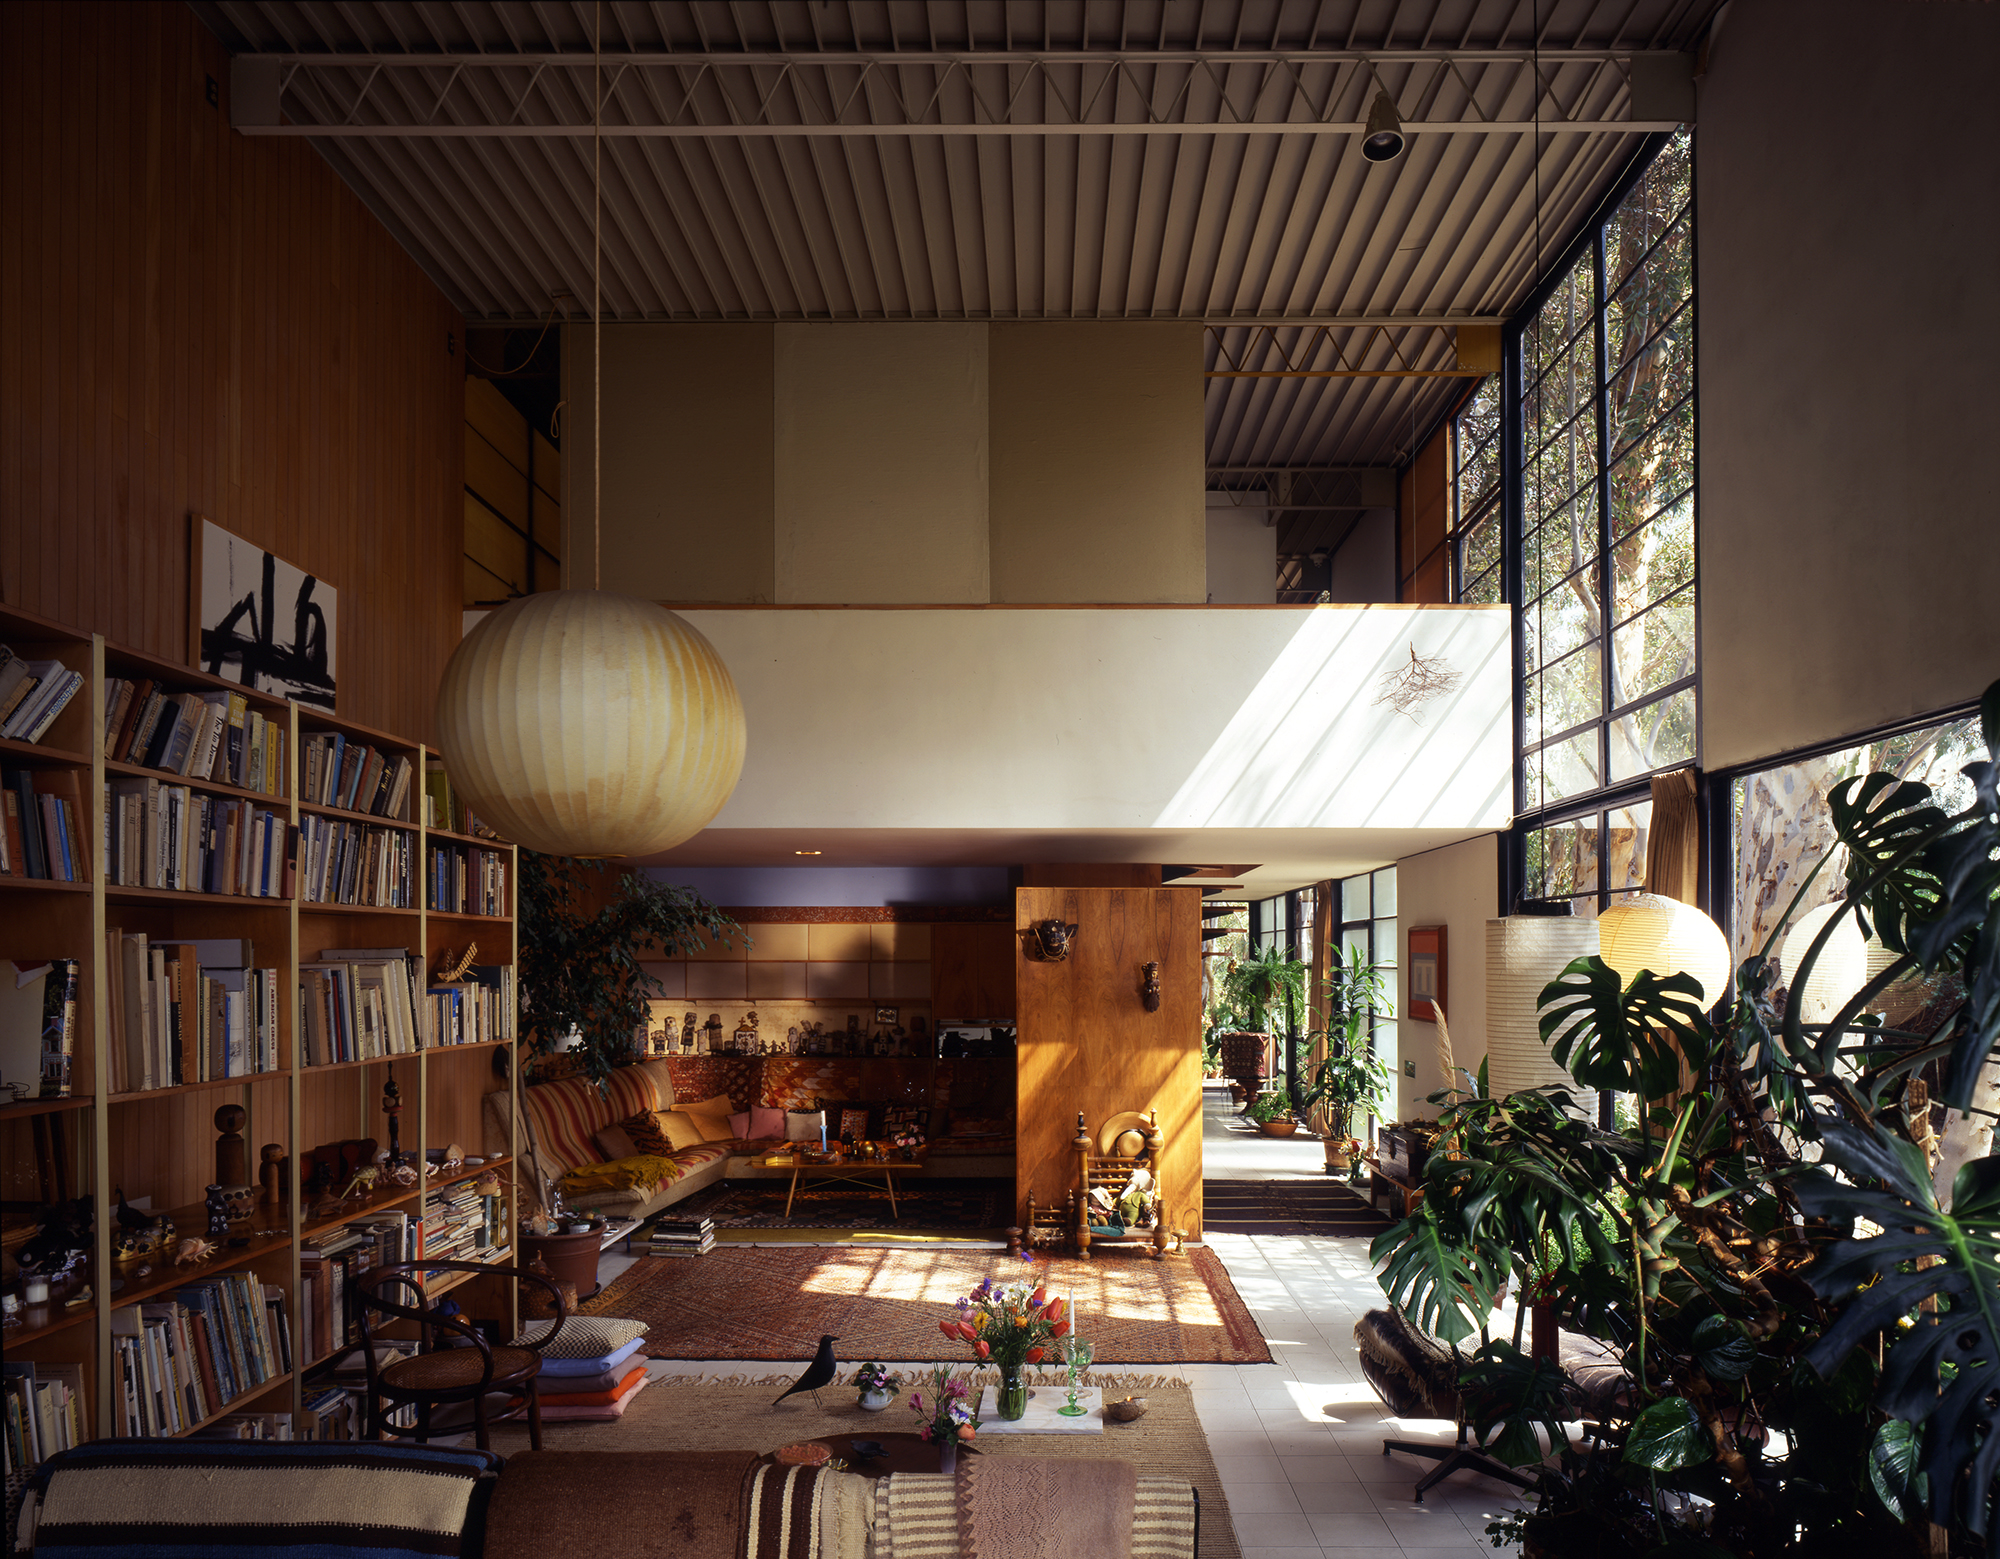 Ray Eames The Eames House – Pacific Palisades, California